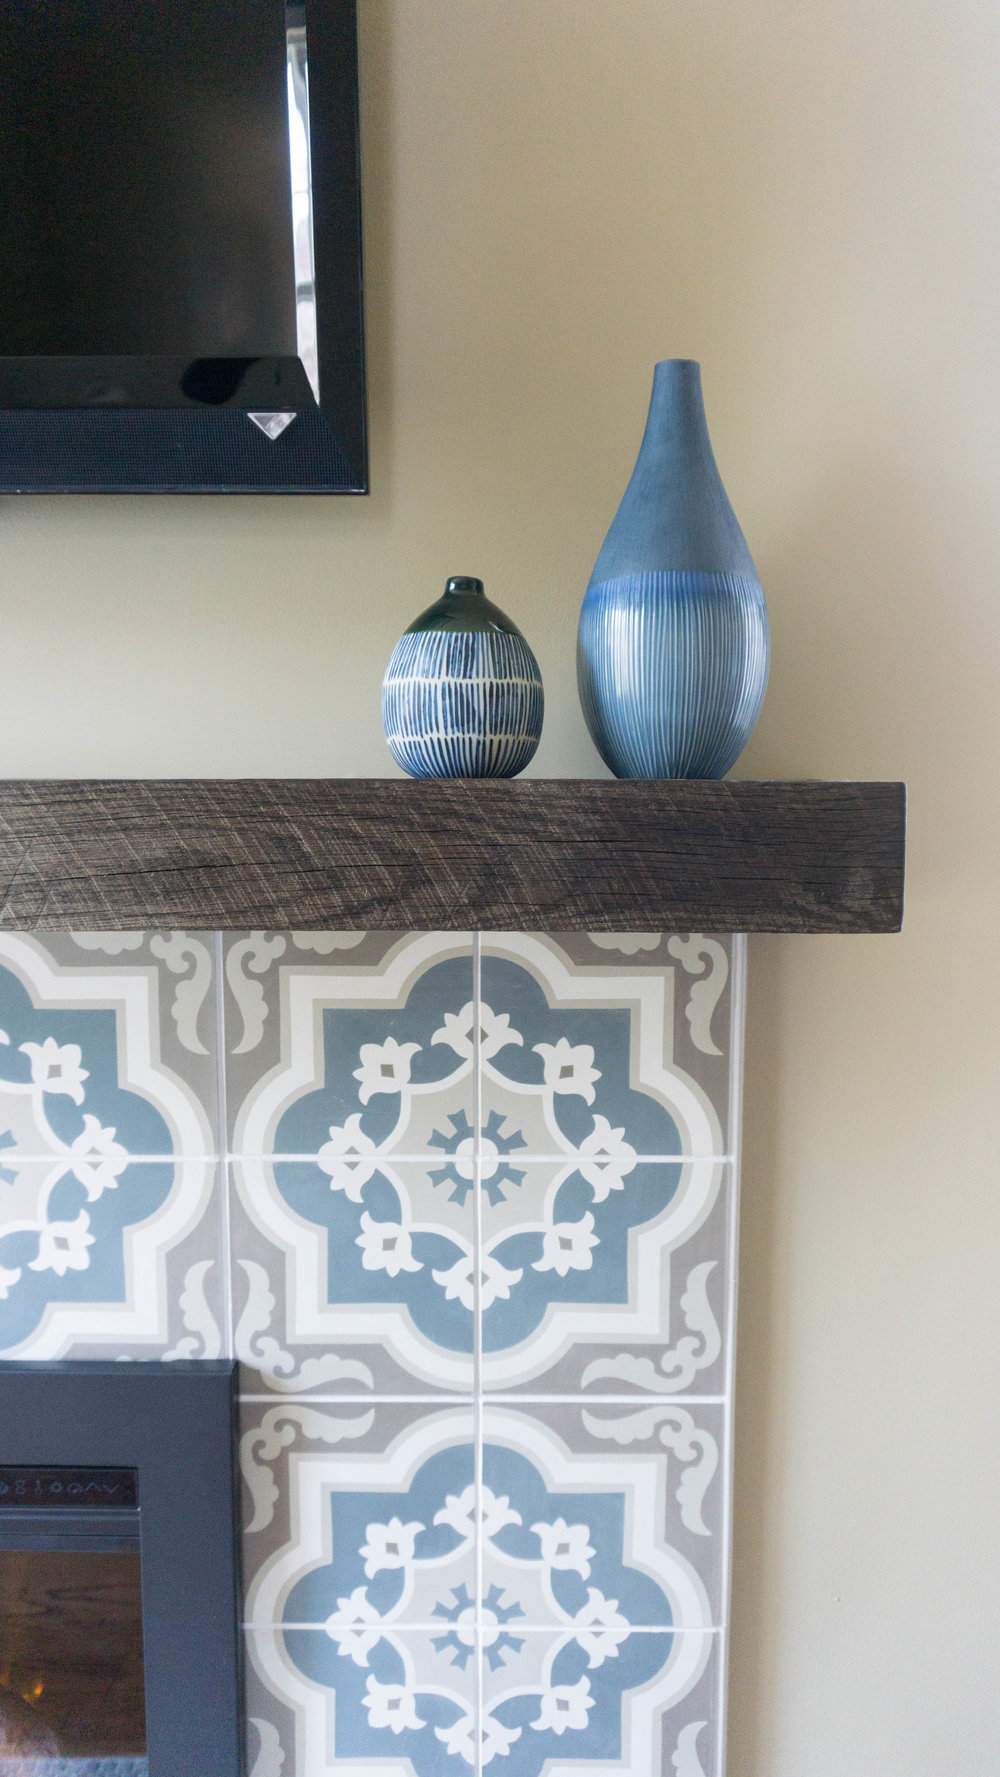 I could not be more obsessed with this tile, mantle and ceramic jar combo.